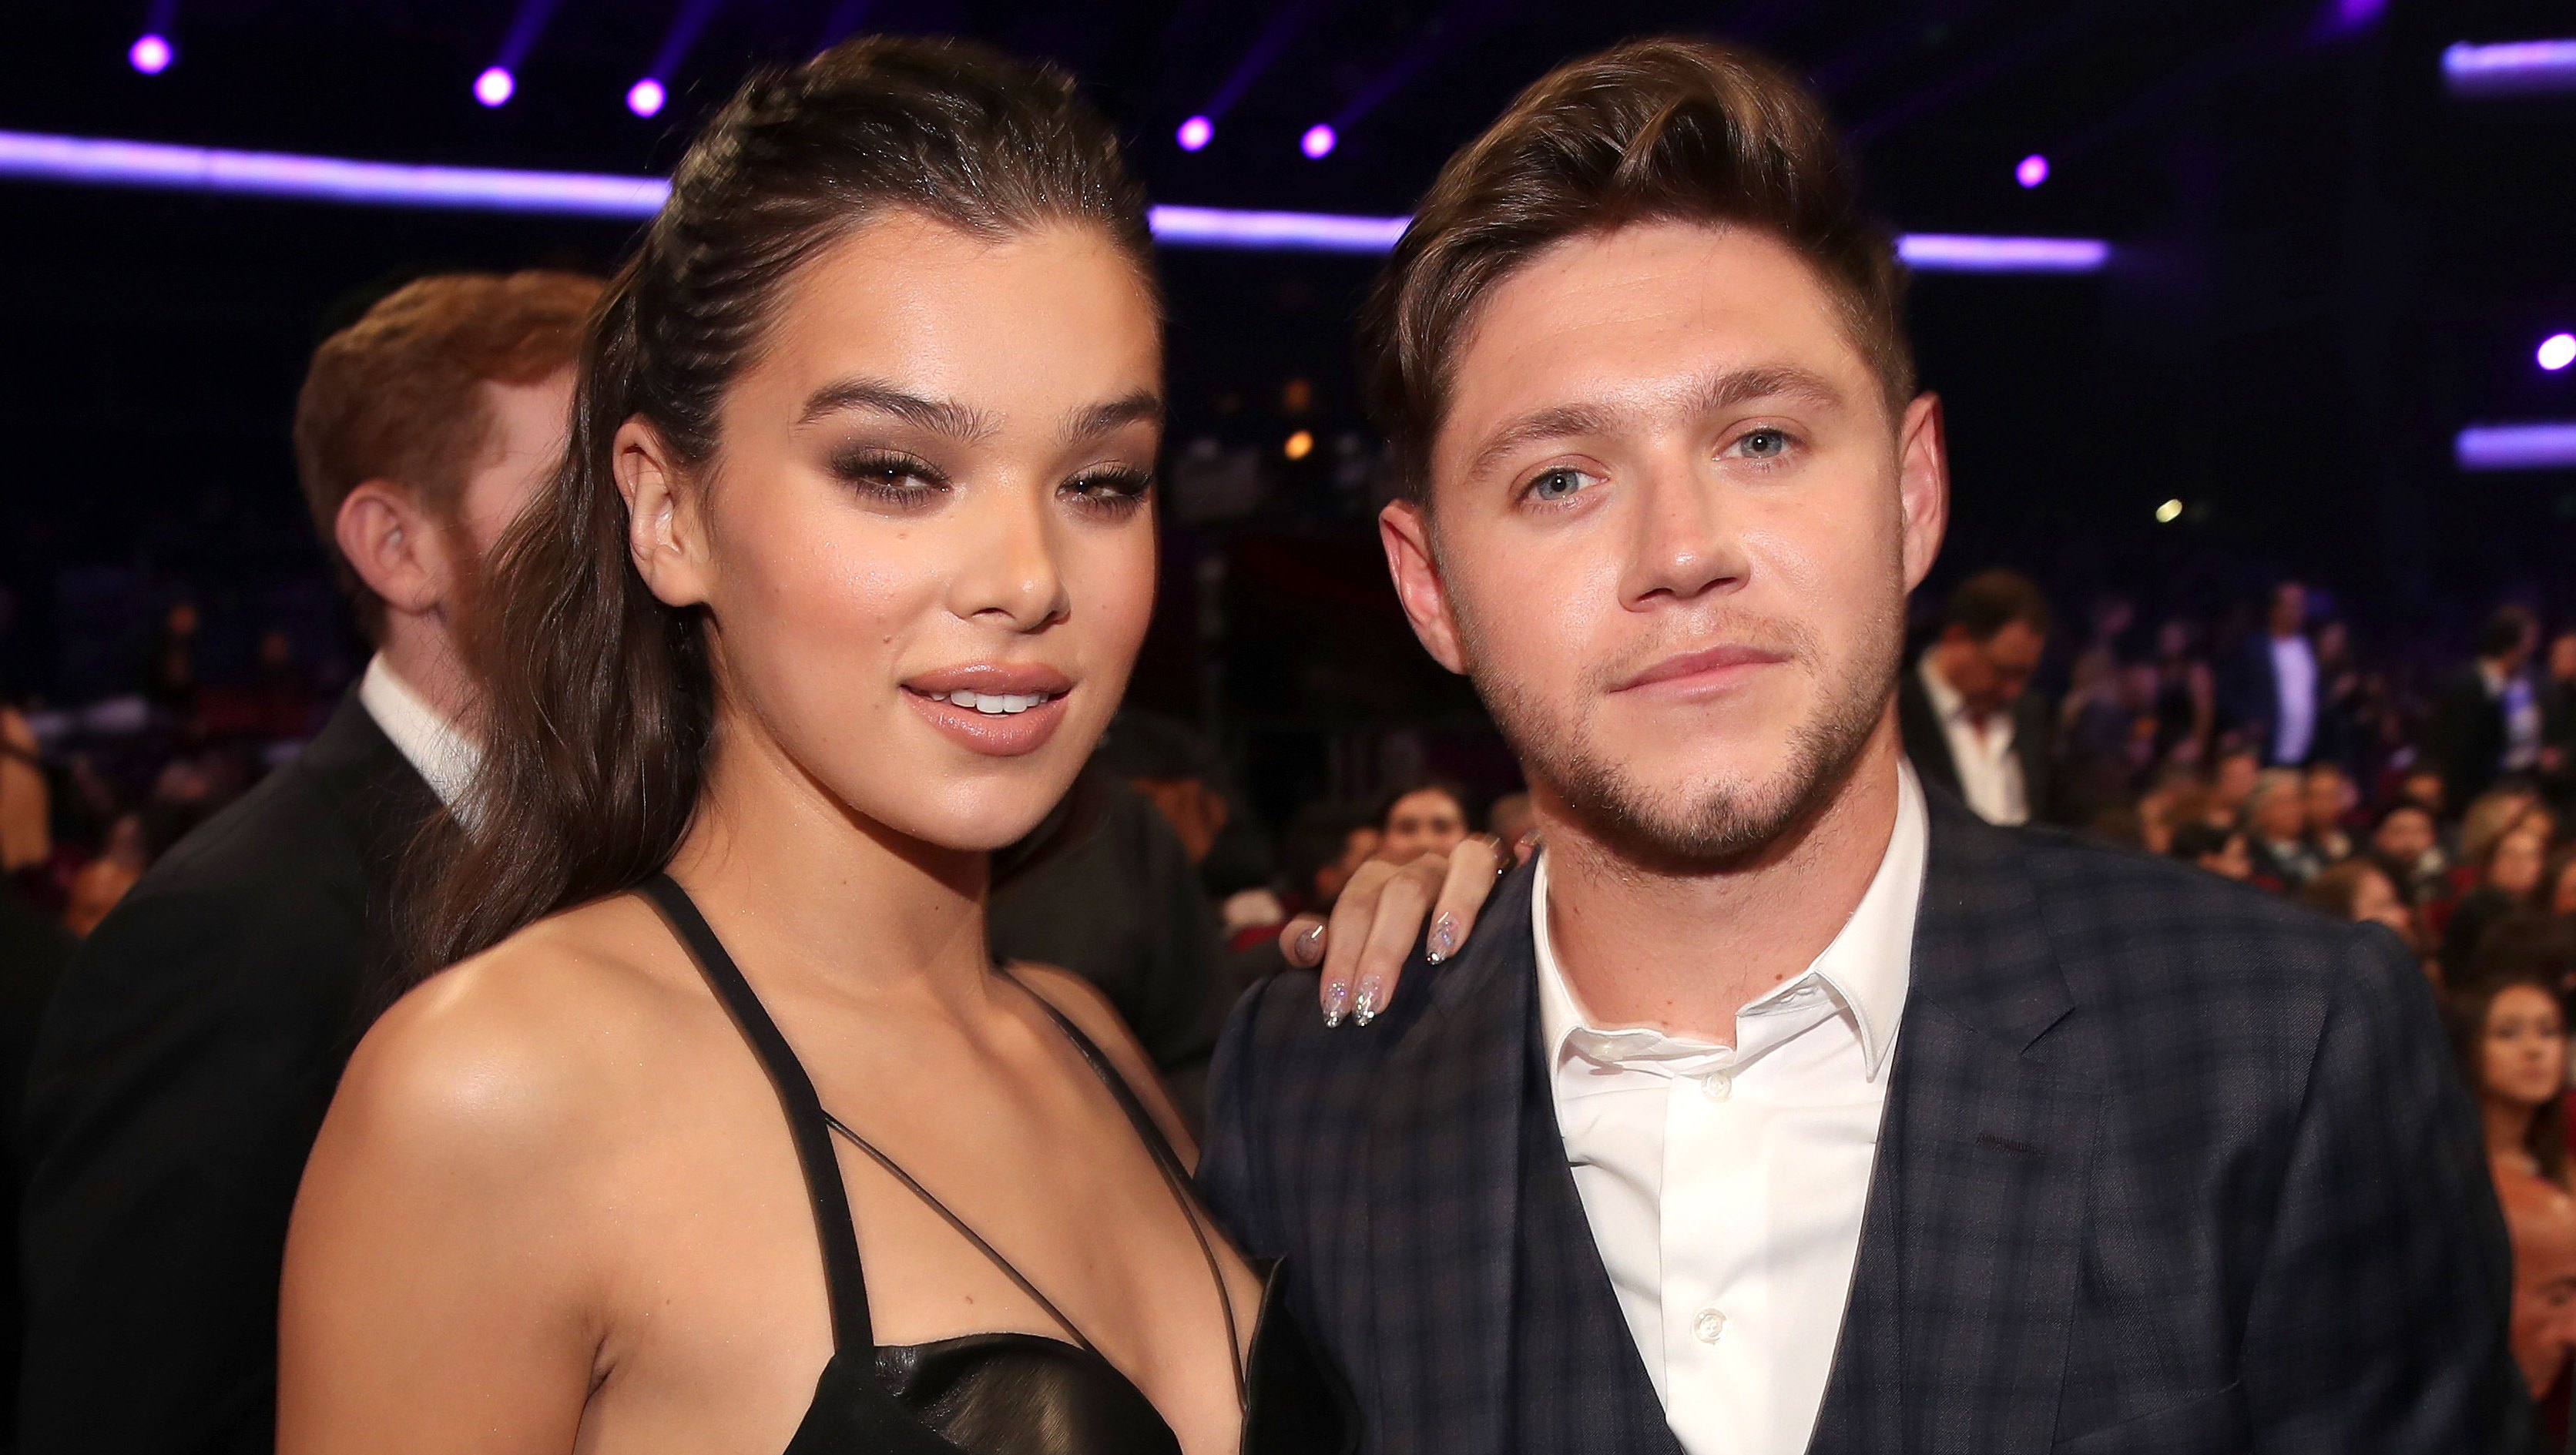 Hailee Steinfeld Shoots Down Rumors That She Threw Shade at Ex Niall Horan